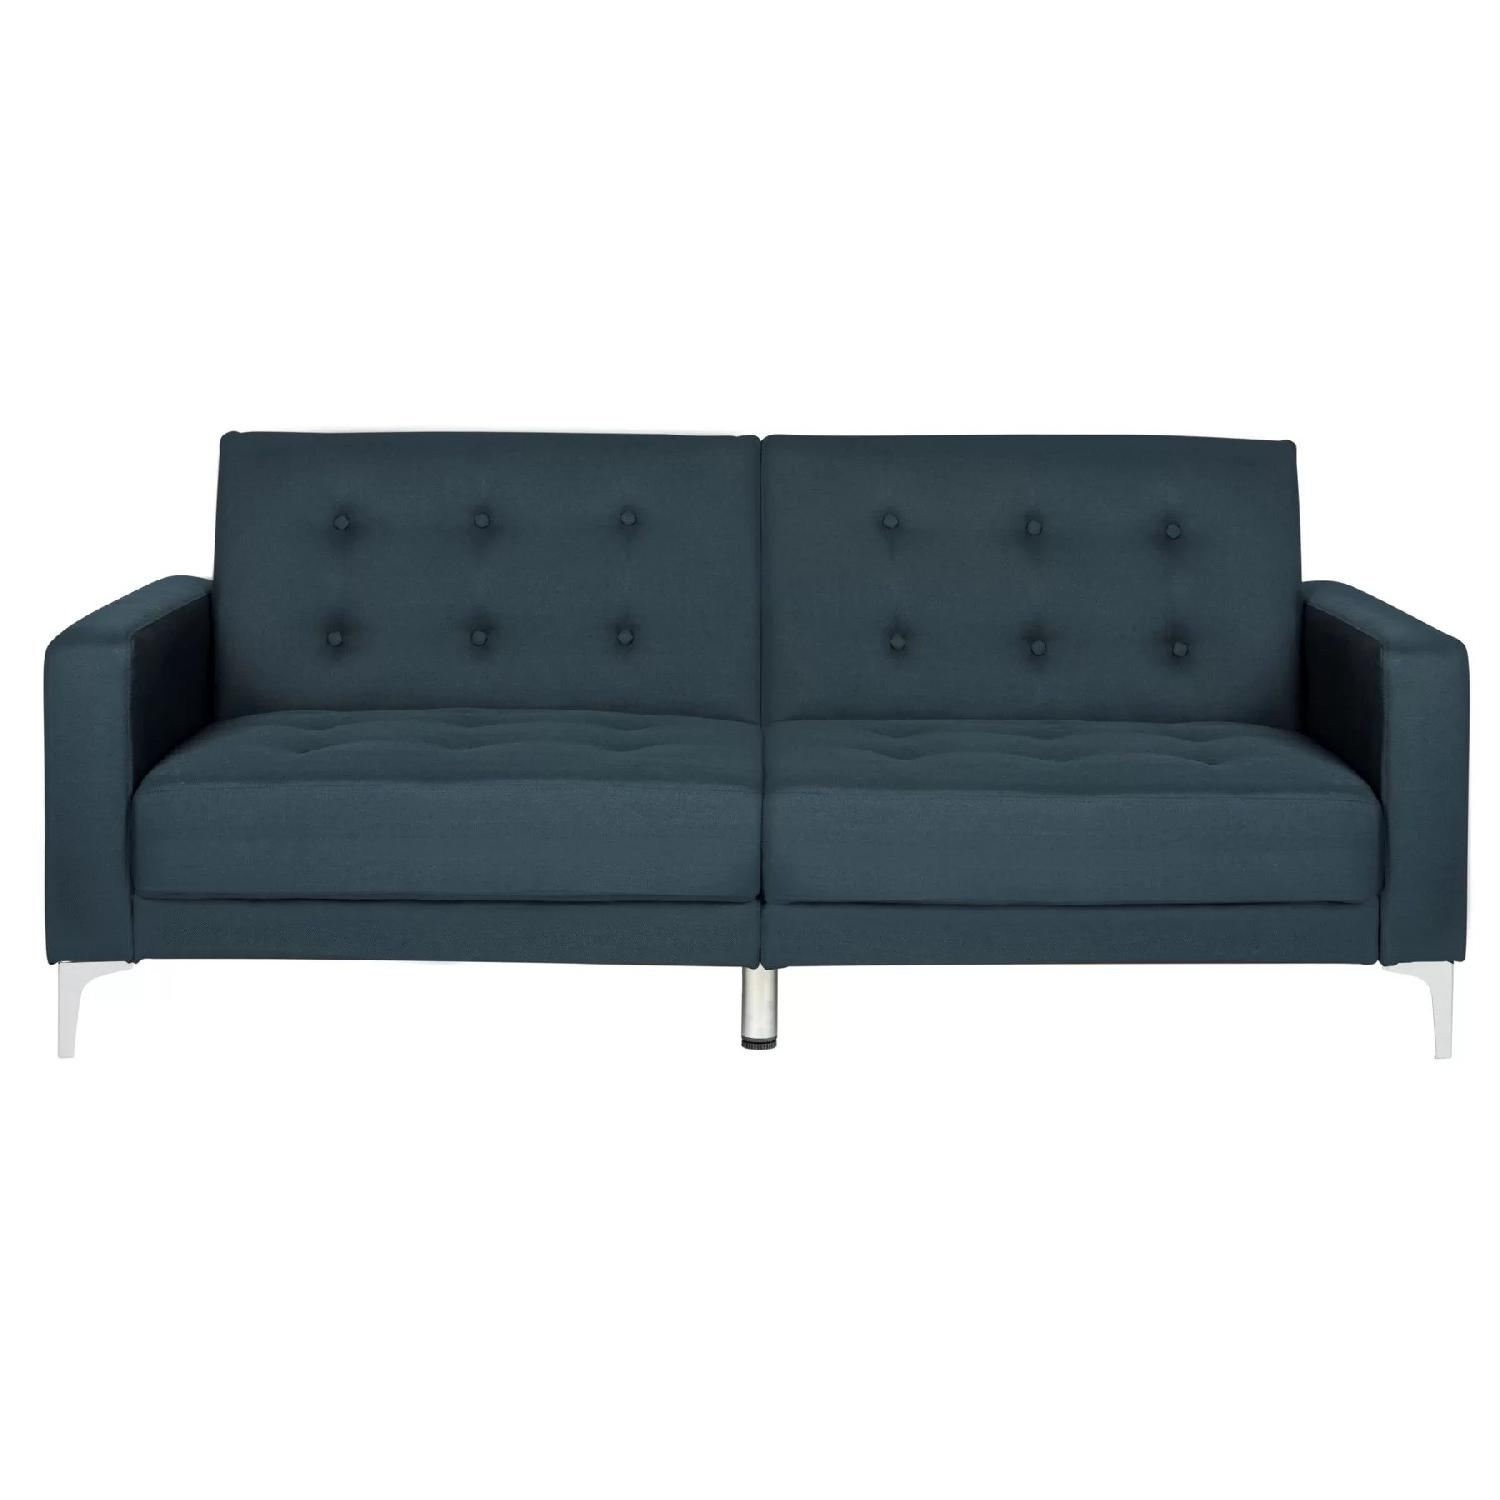 Wade Logan Jayde Contemporary Sleeper Sofa ...